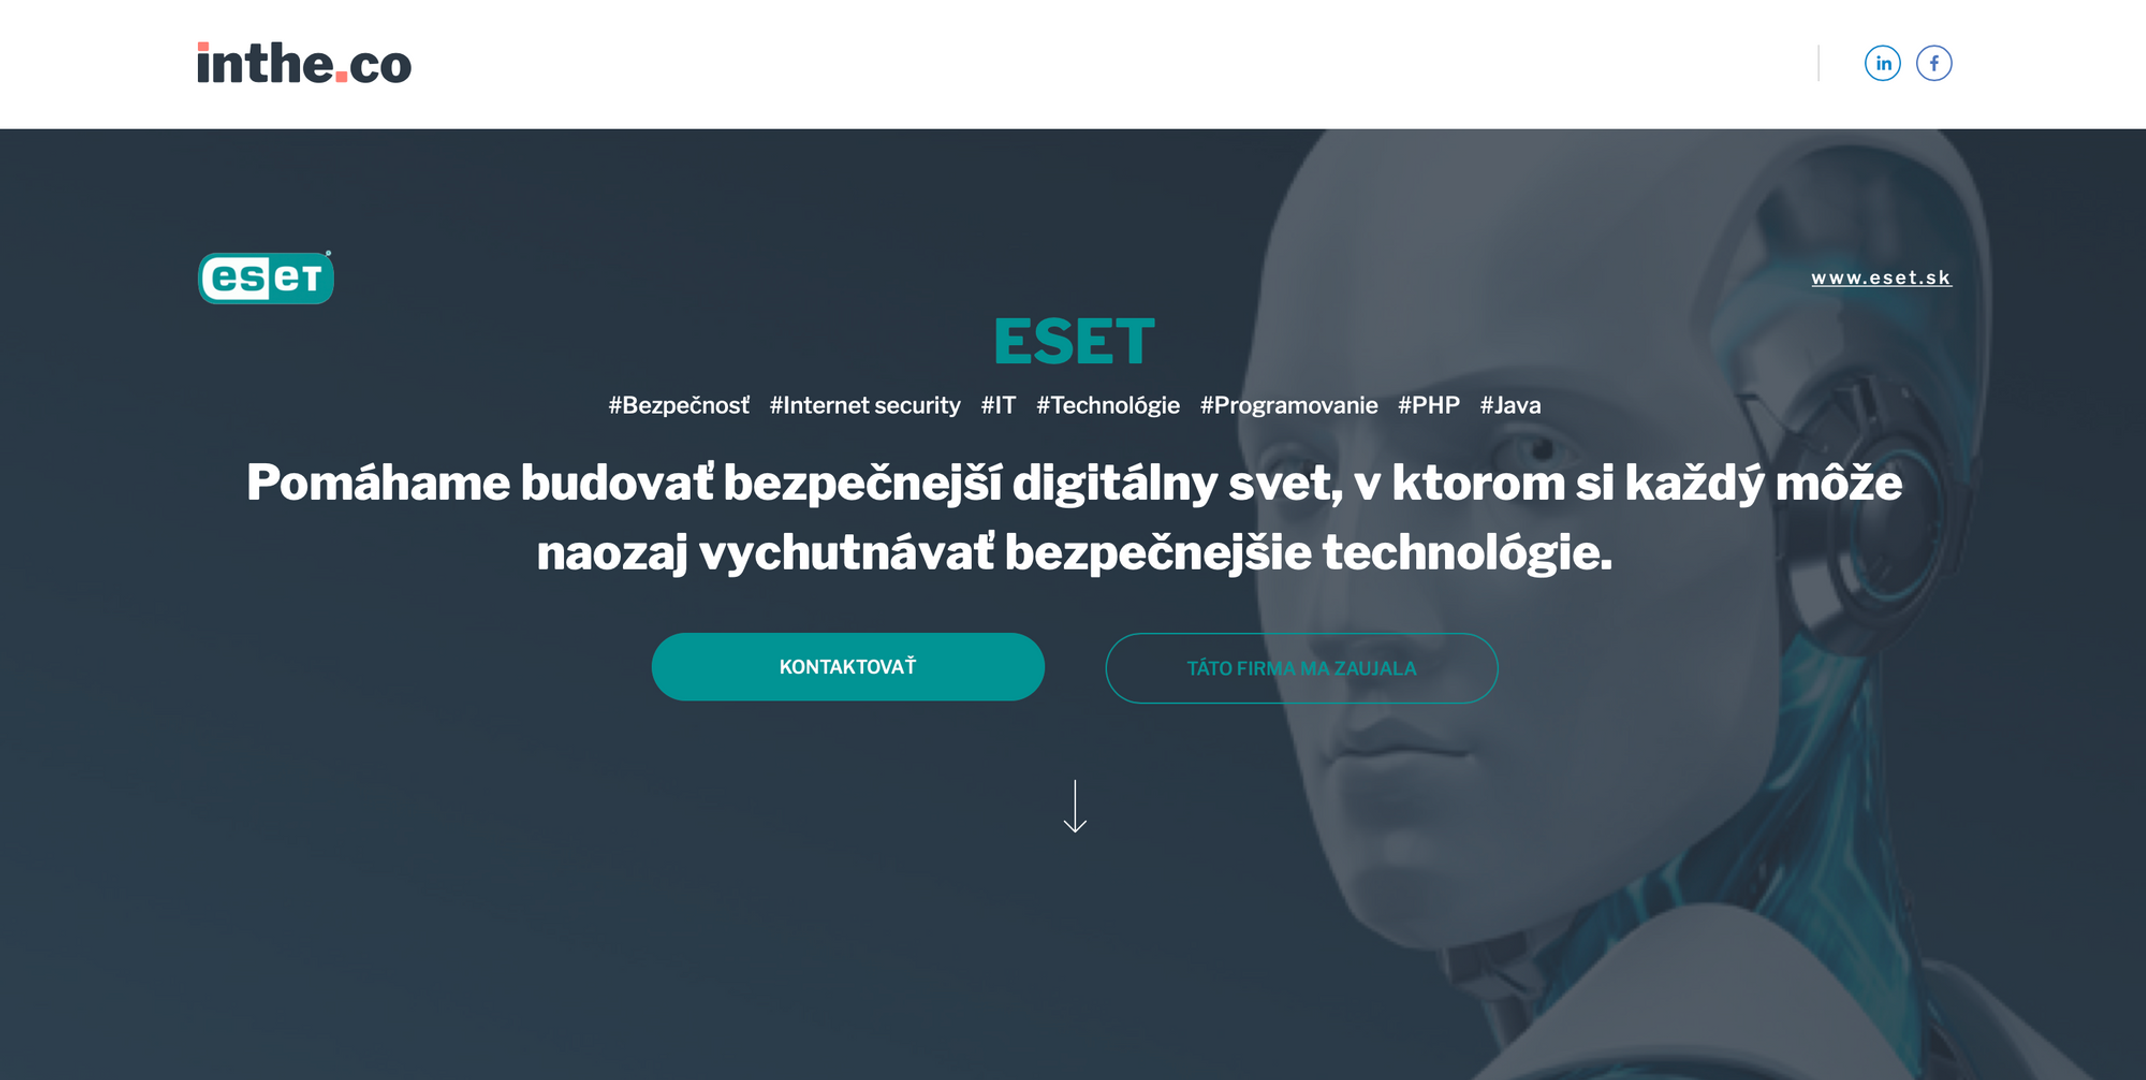 ESET - carreer website